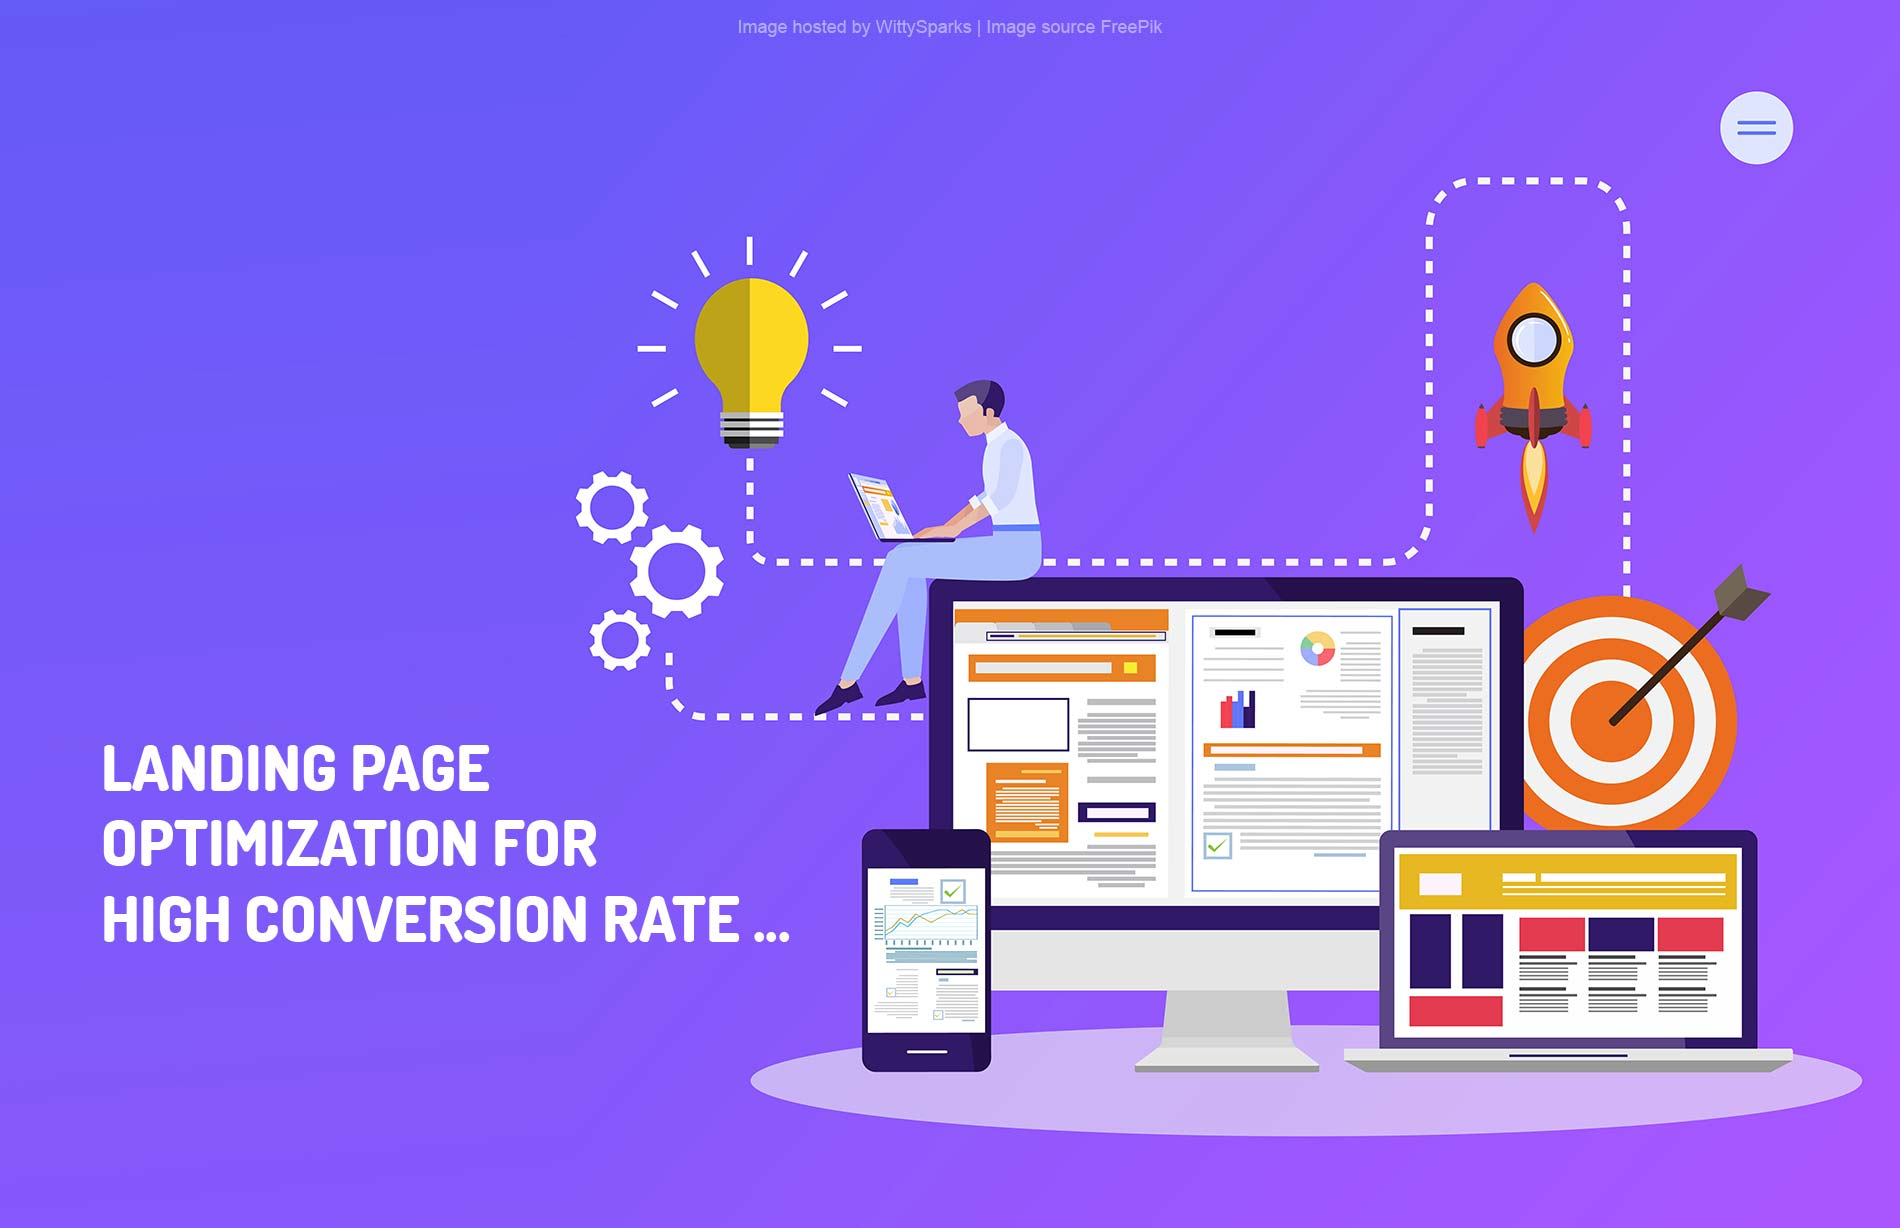 Landing page optimization for high conversion rates